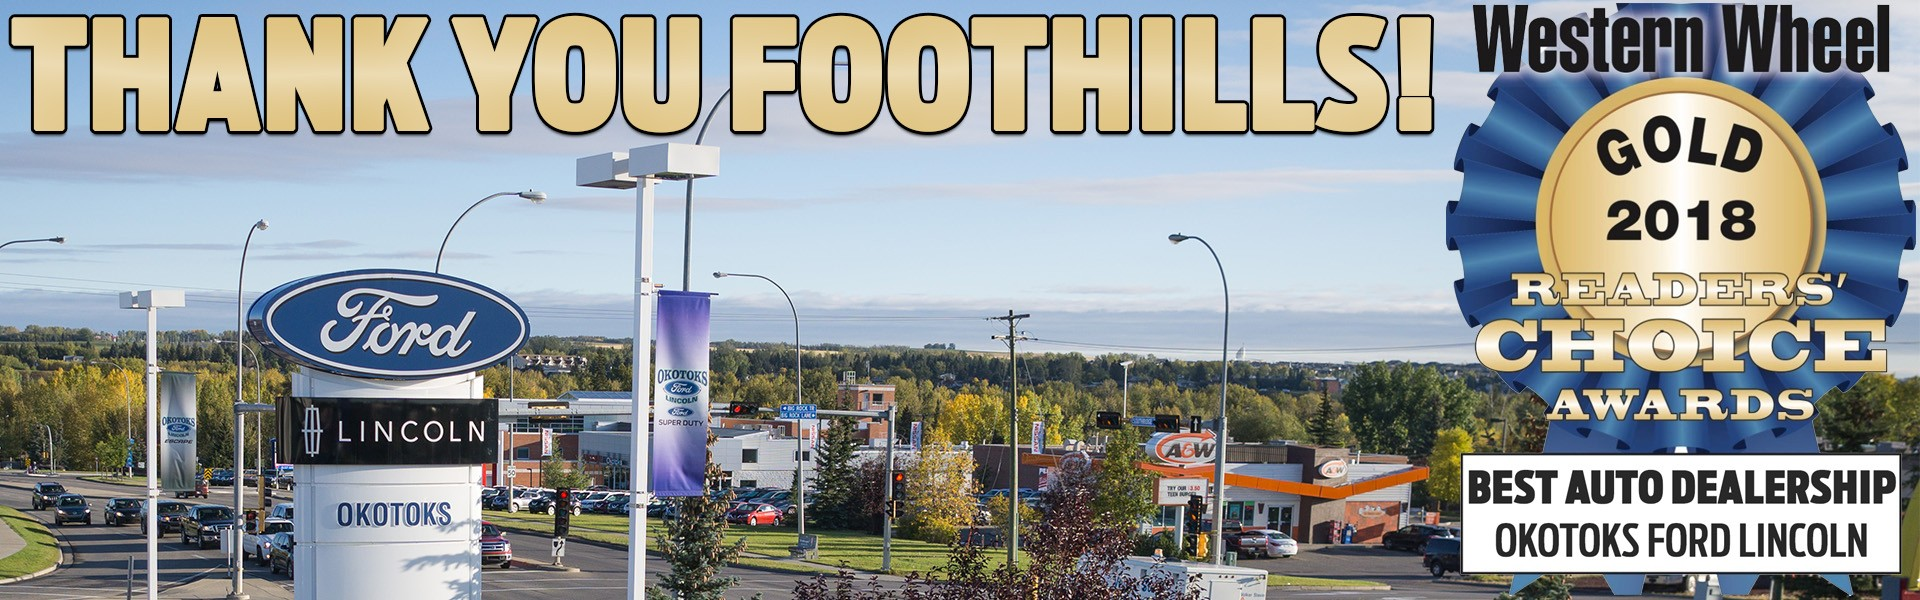 BEST AUTO DEALERSHIP FOOTHILLS 2018 OKOTOKS FORD